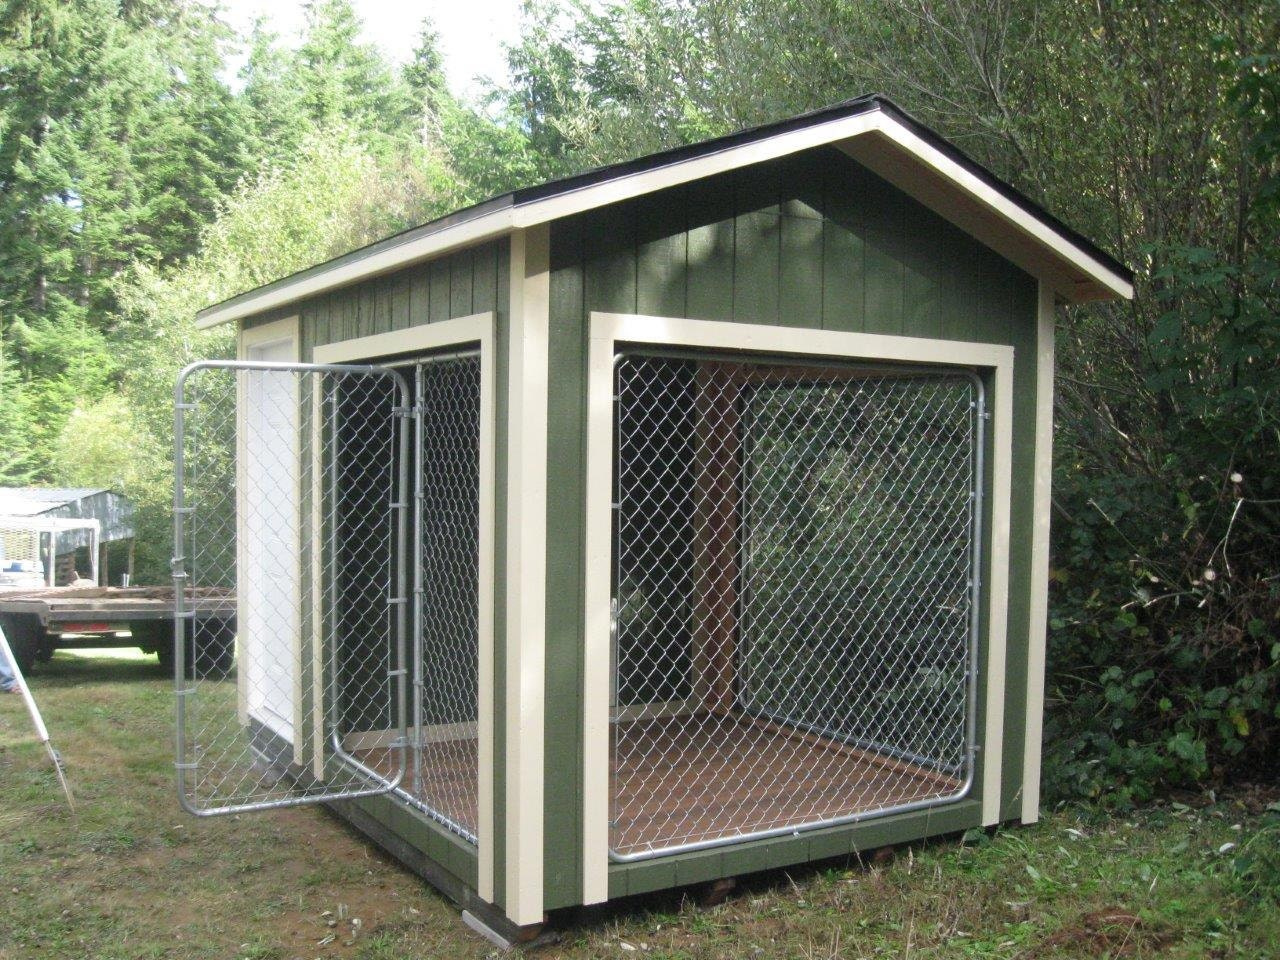 8x12 k9 kennel with 4x8 dog house and 8x8 kennel built to for The dog house kennel